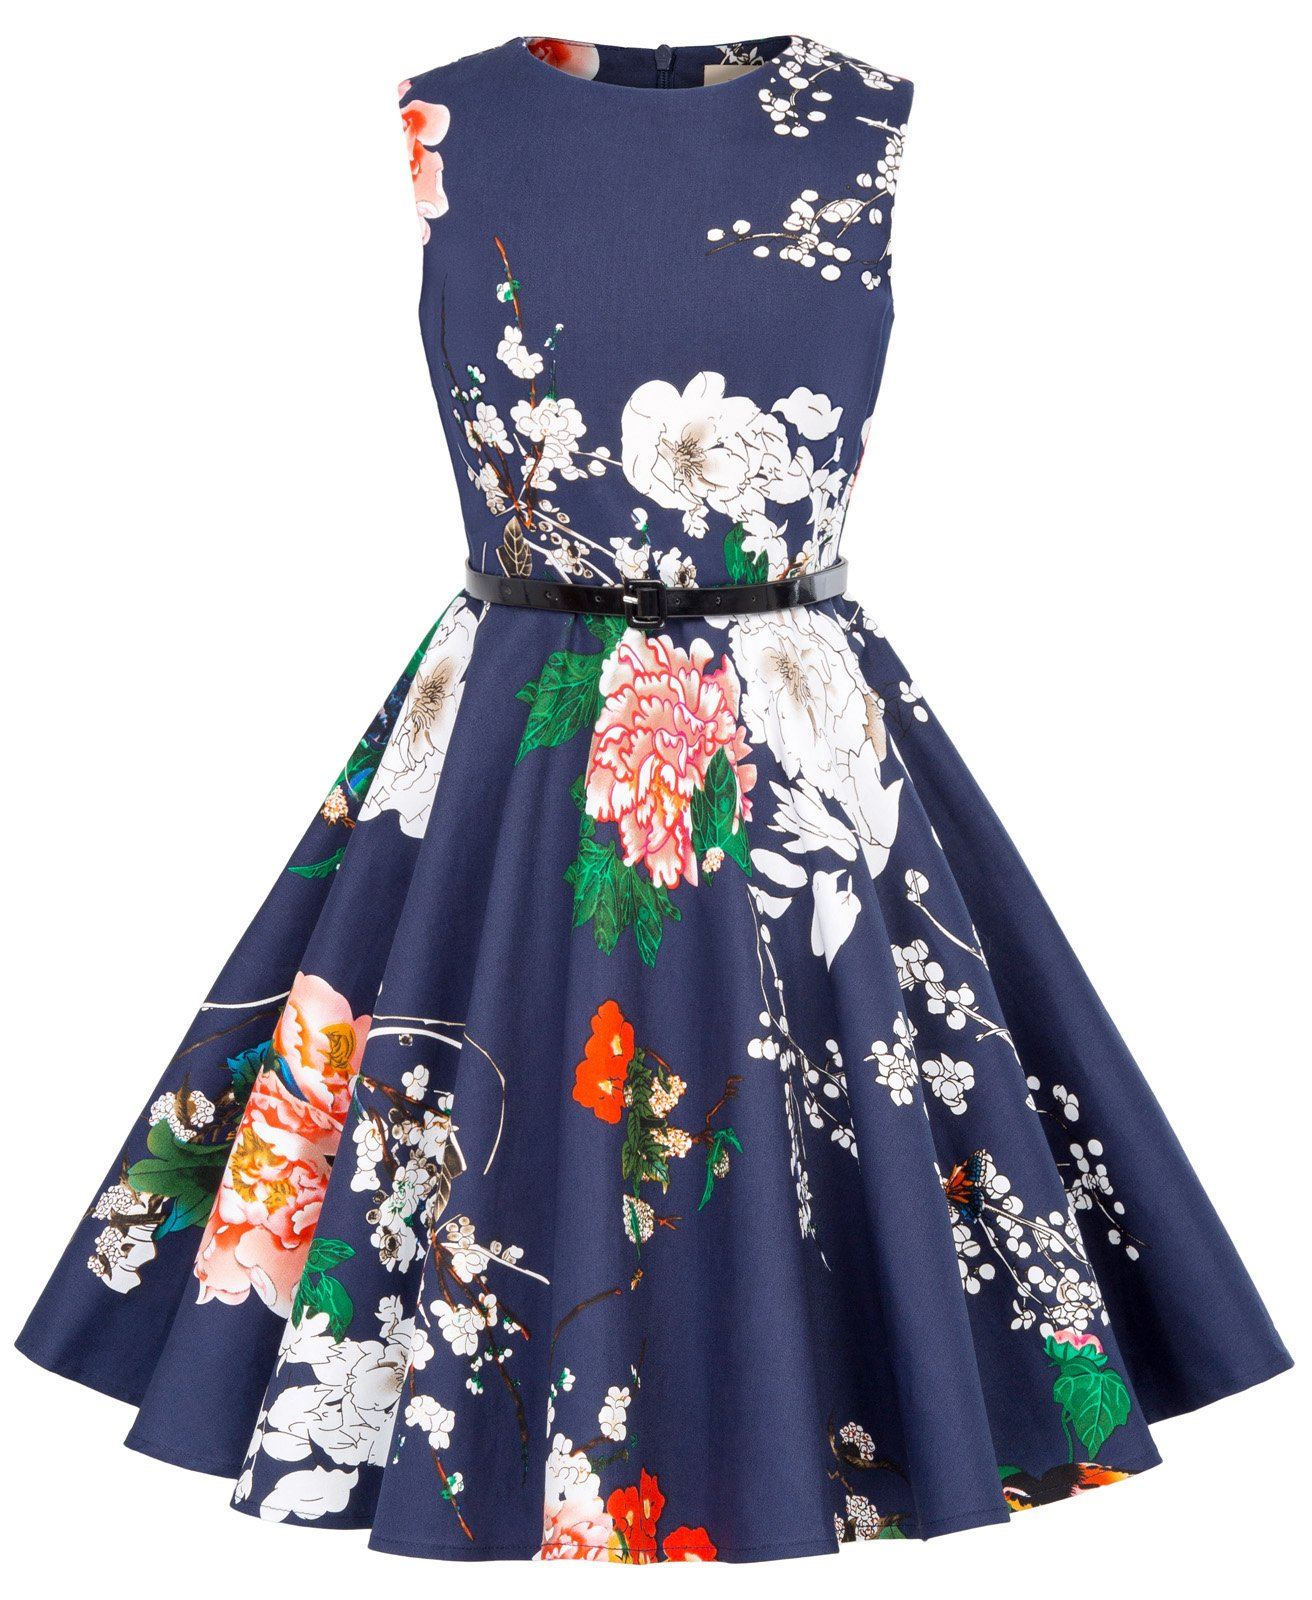 3dd3464f87a Kate Kasin Girls Sleeveless Vintage Print Swing Party Dresses 6-15 Years